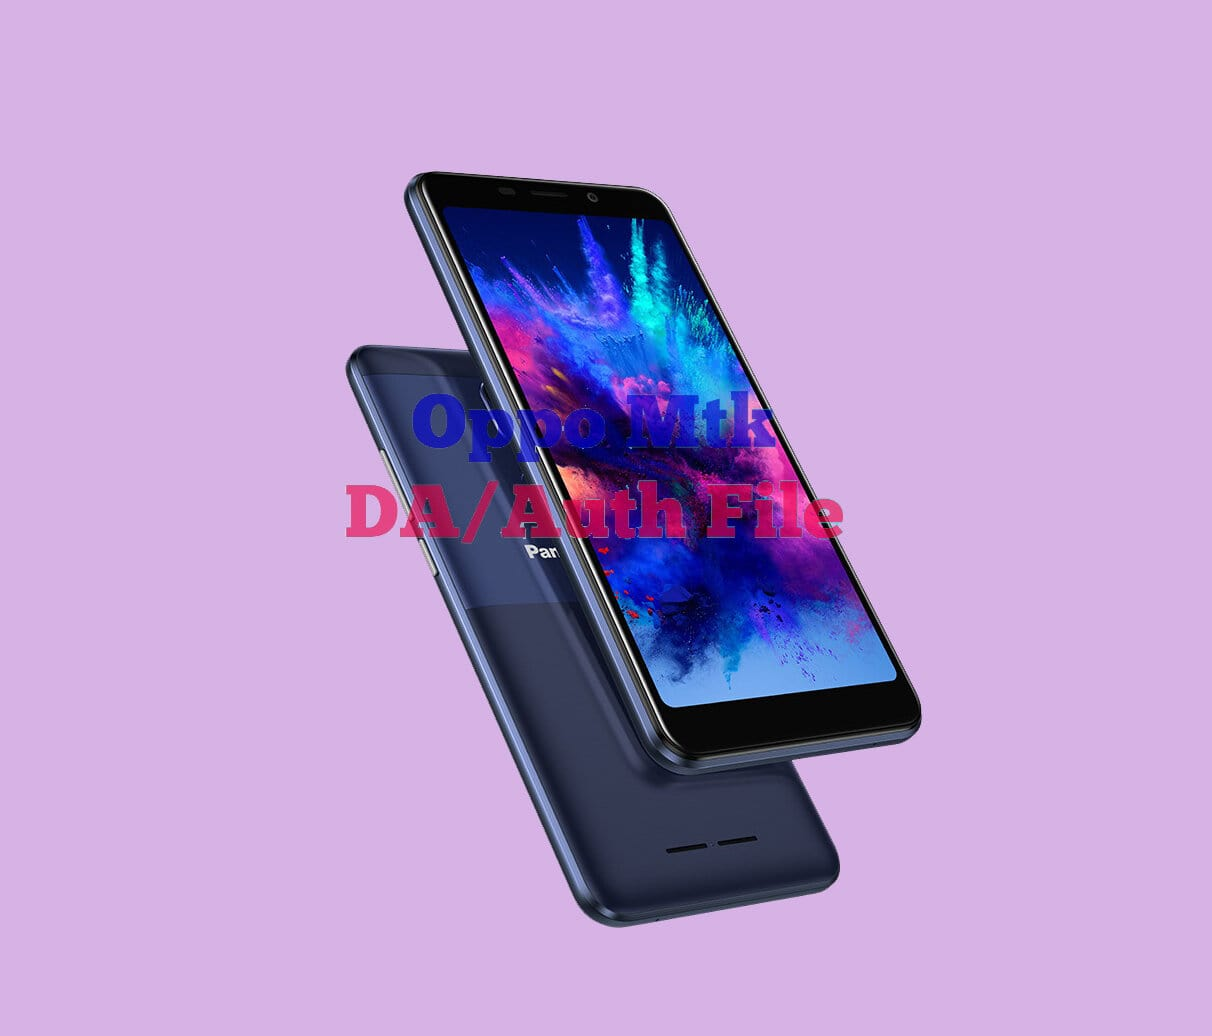 recover panasonic mobile,panasonic eluga i hang on logo,how to flash secure boot device,panasonic t40,how to flash panasonic eluga i,panasonic eluga i flashing,how to flash panasonic eluga i 1000% done by smart phone help,error status_sec_auth_file_needed (0xc0030012),how to unbrick infinix x604 note5,recover android,how to fix dead infinix,flash tools,flash android,dead mtk device,flash smartphone,smartphone android installation,custom rom,install android,stock rom